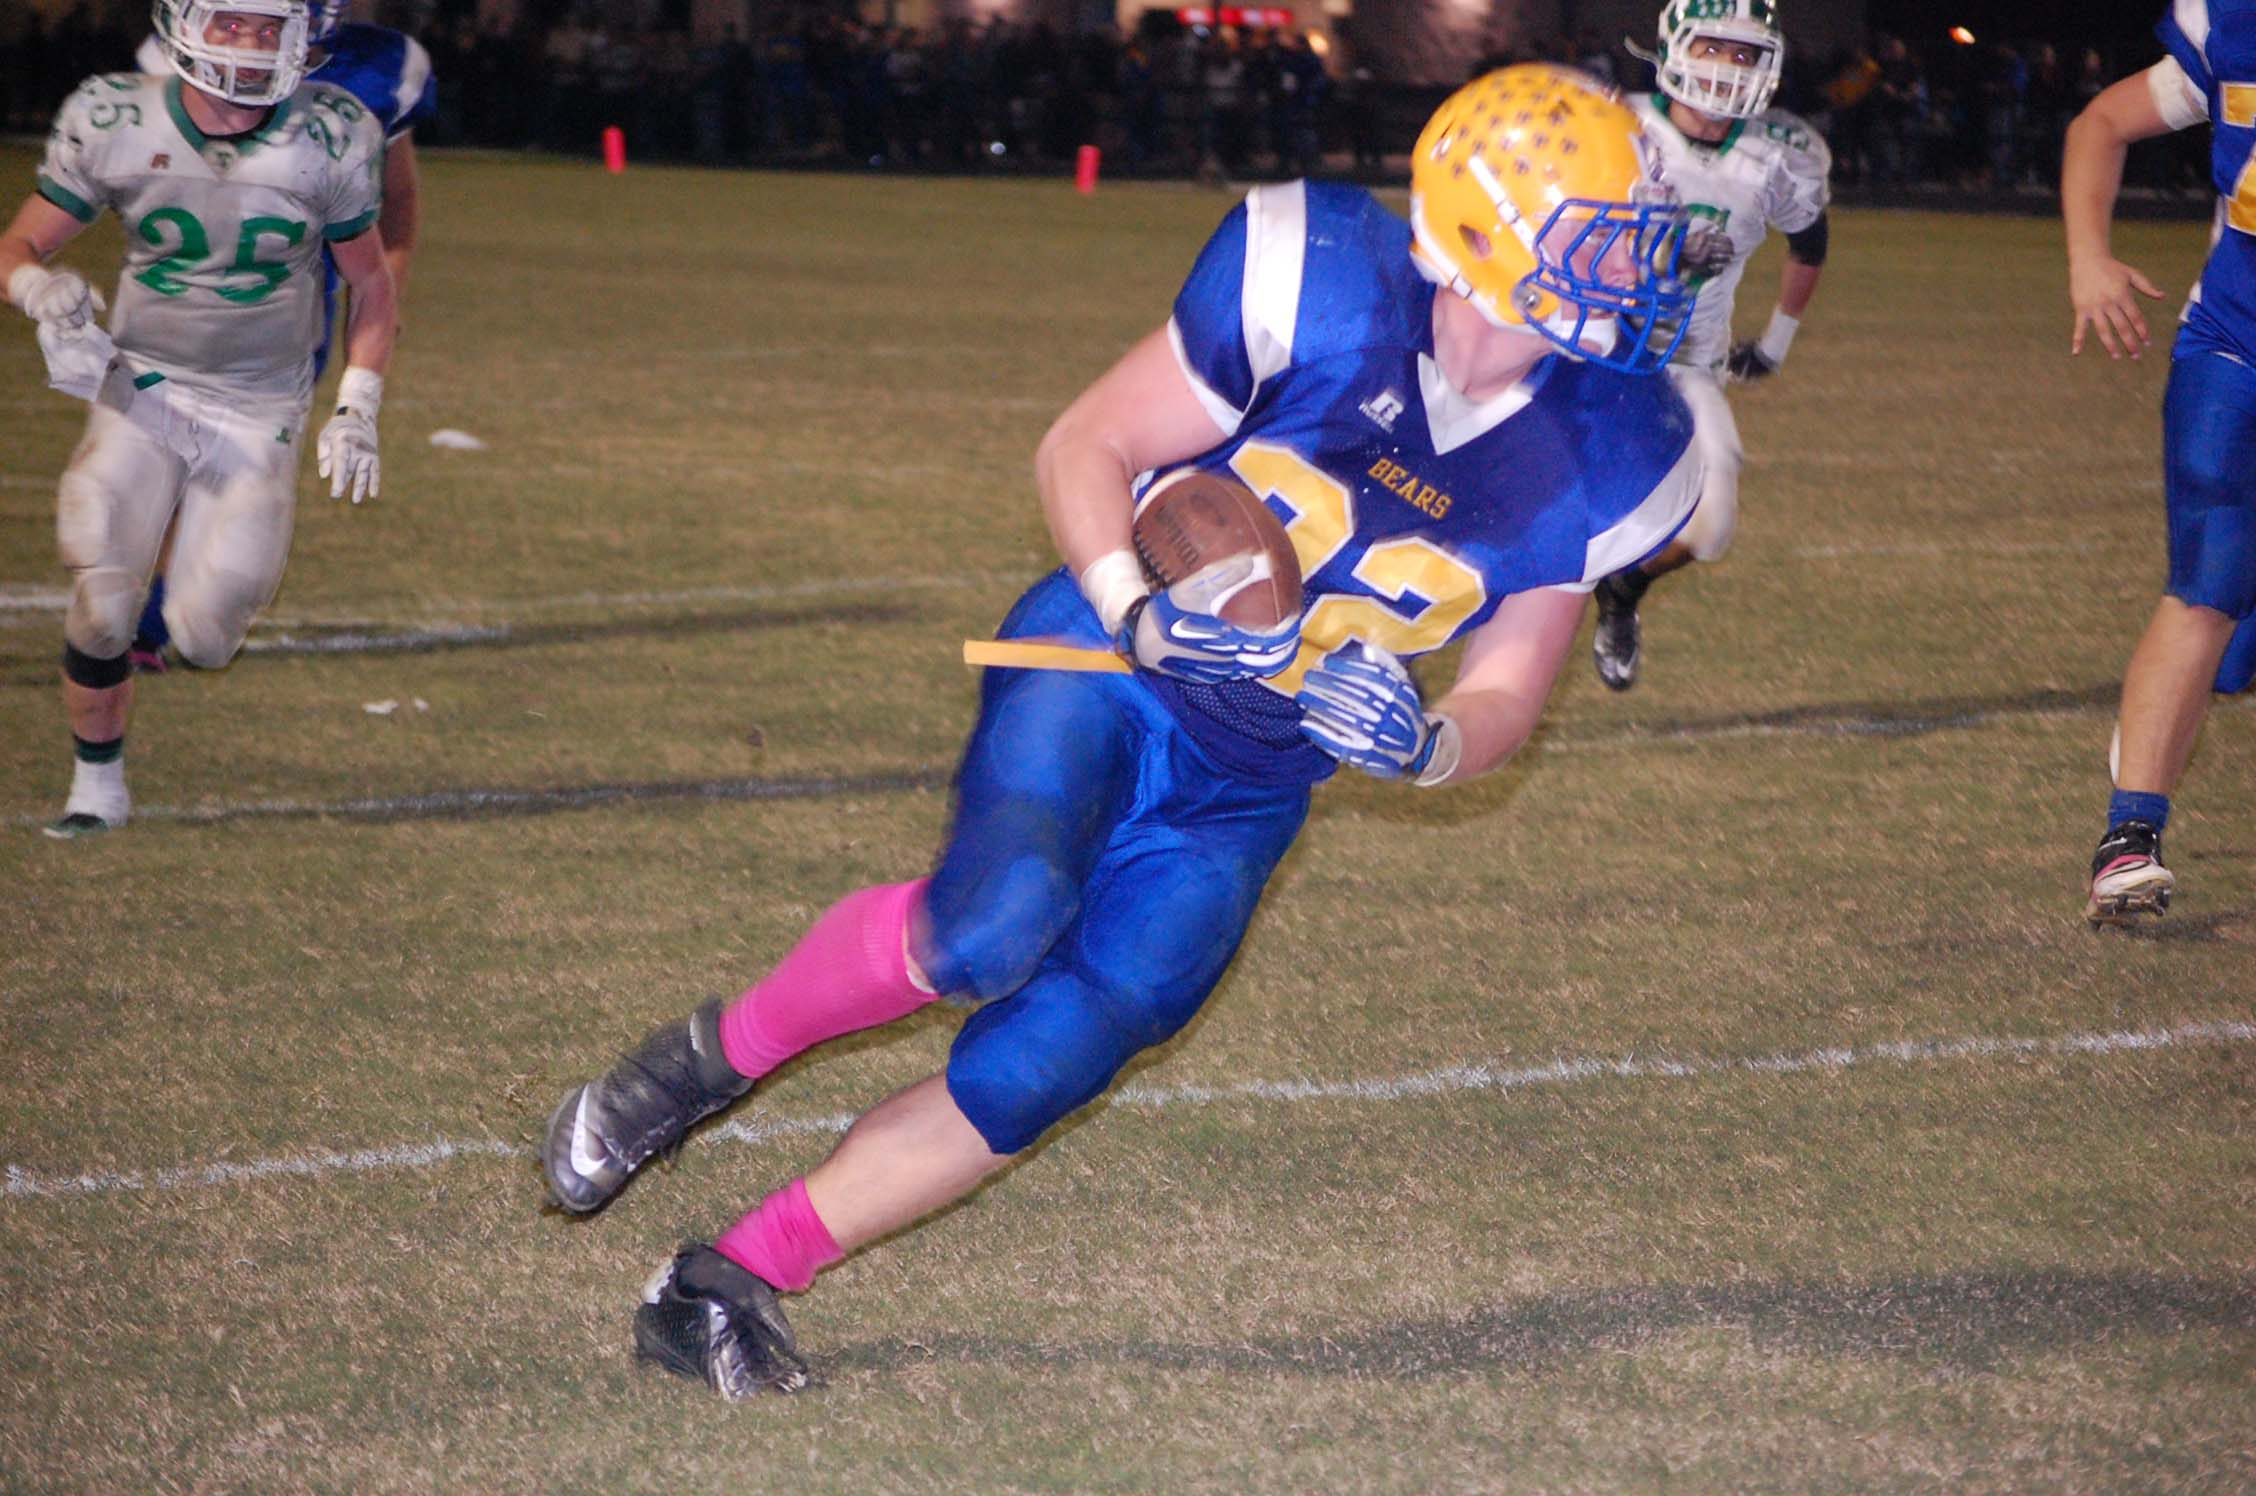 Chase Willis picks up an Ava first down at the Thayer 21-yard line on a pass from quarterback Cody Huff to keep an Ava drive going in the second quarter last Friday night.